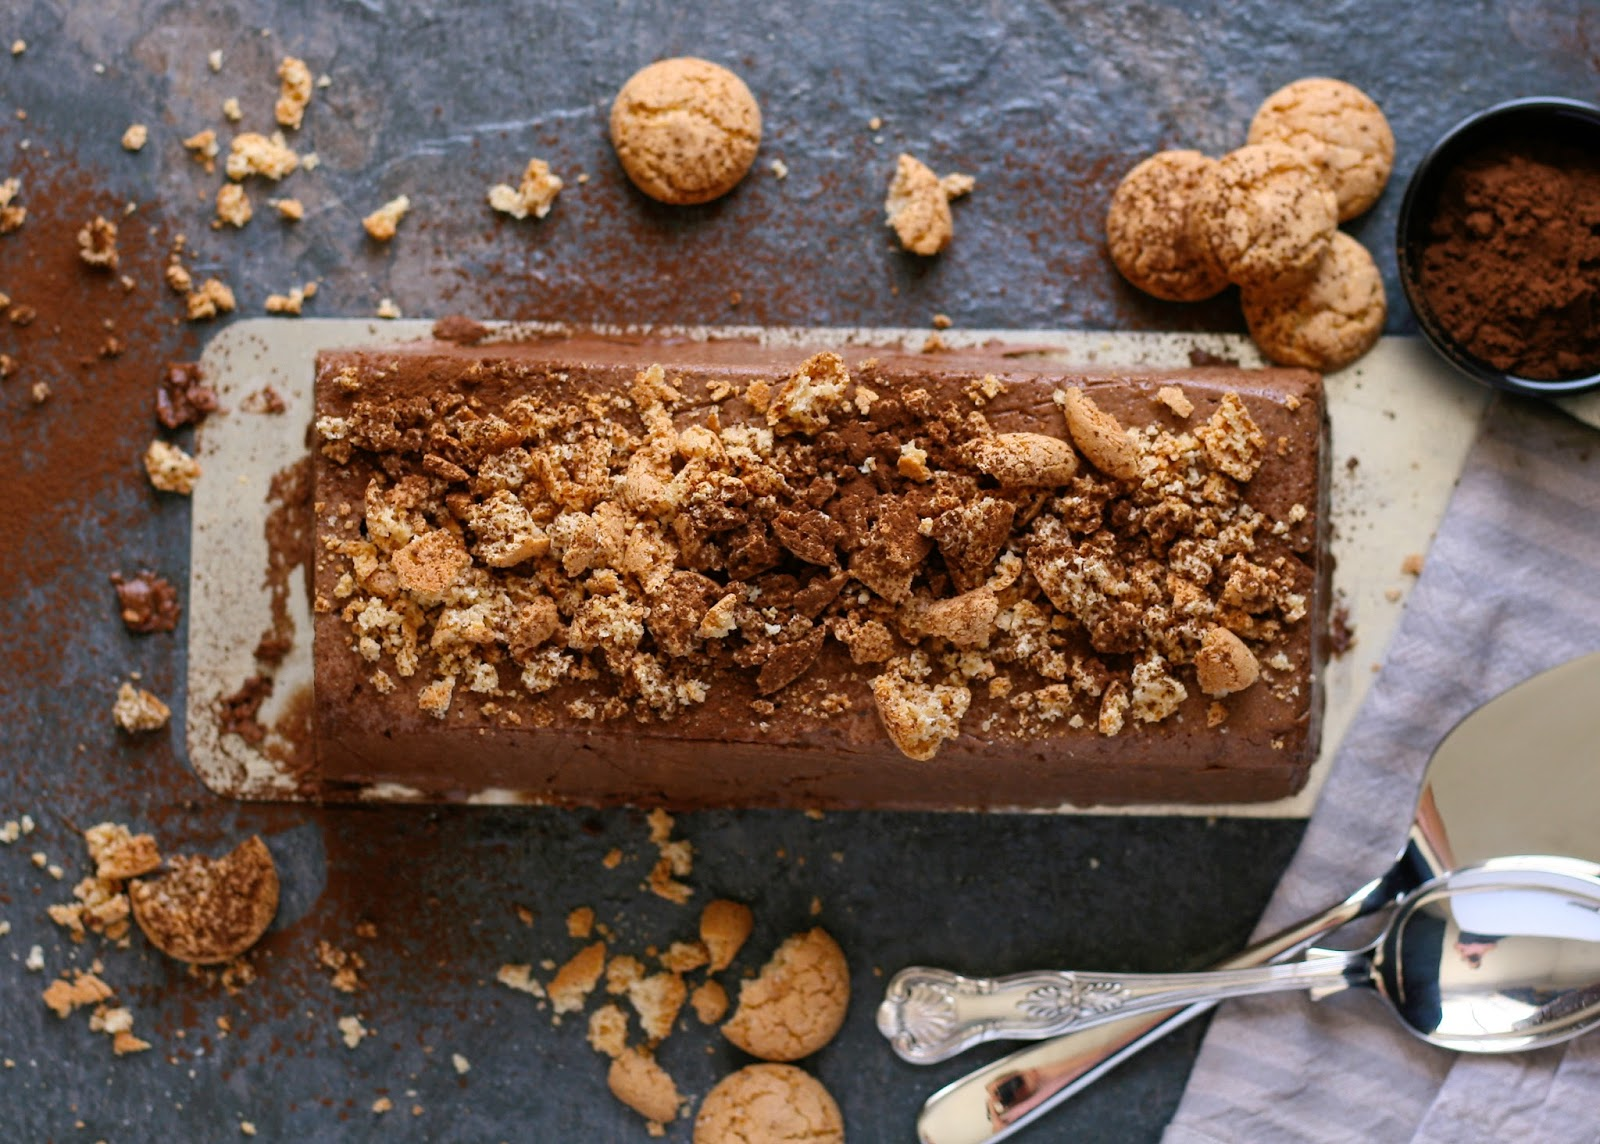 Dark chocolate semifreddo with amaretti biscuits.